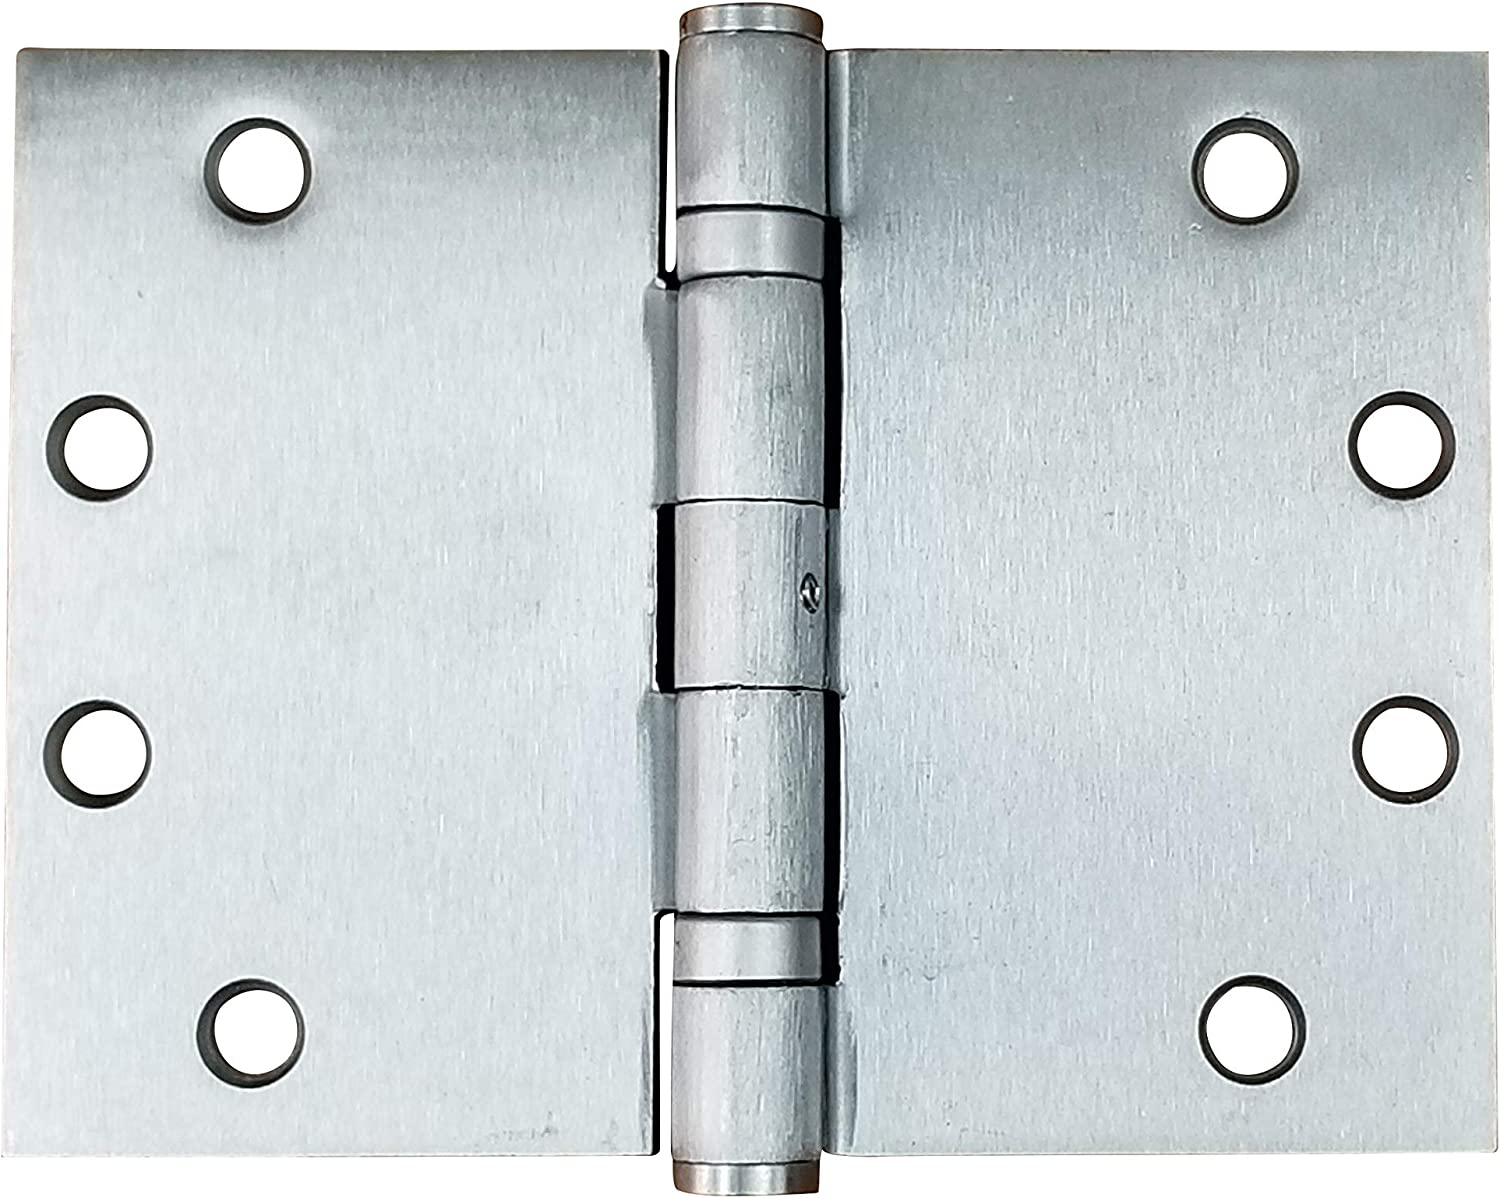 Wide Throw Hinge - High Popular shop is the lowest price challenge quality new Heavy Duty Steel with Chrome Satin Finish 4.